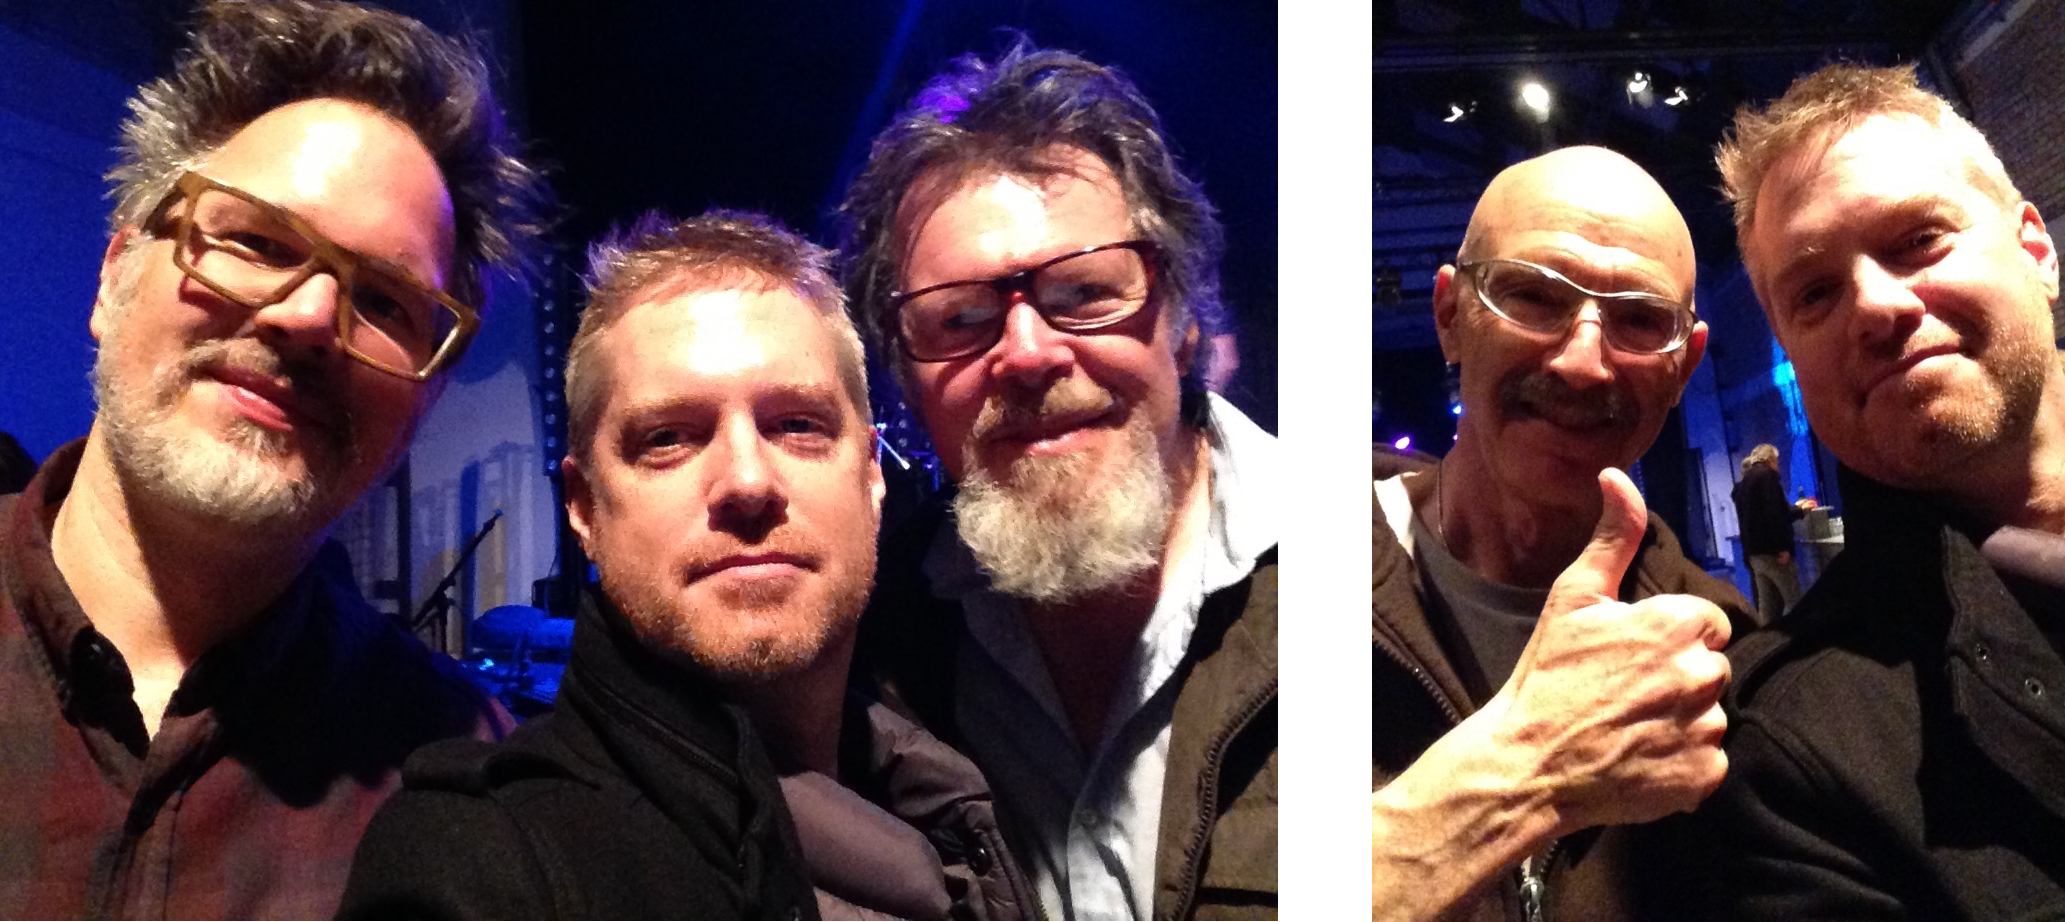 Stick Men!!! - LEFT: Markus Reuter, myself, and Pat Mastelotto. RIGHT: The one and only, my hero, Tony Levin and little old me!